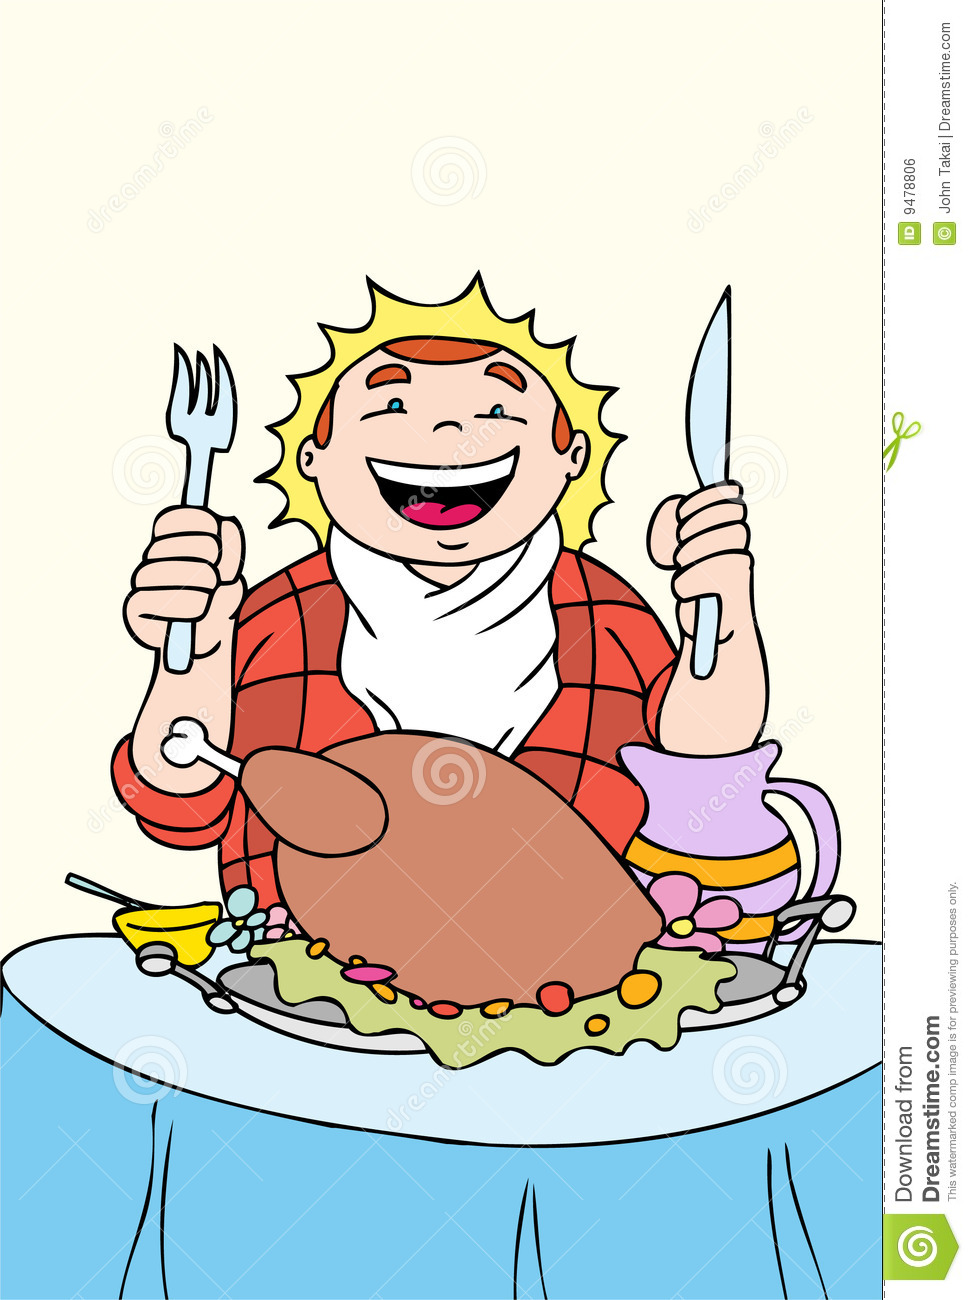 Thanksgiving Feast Royalty Free Stock Image.